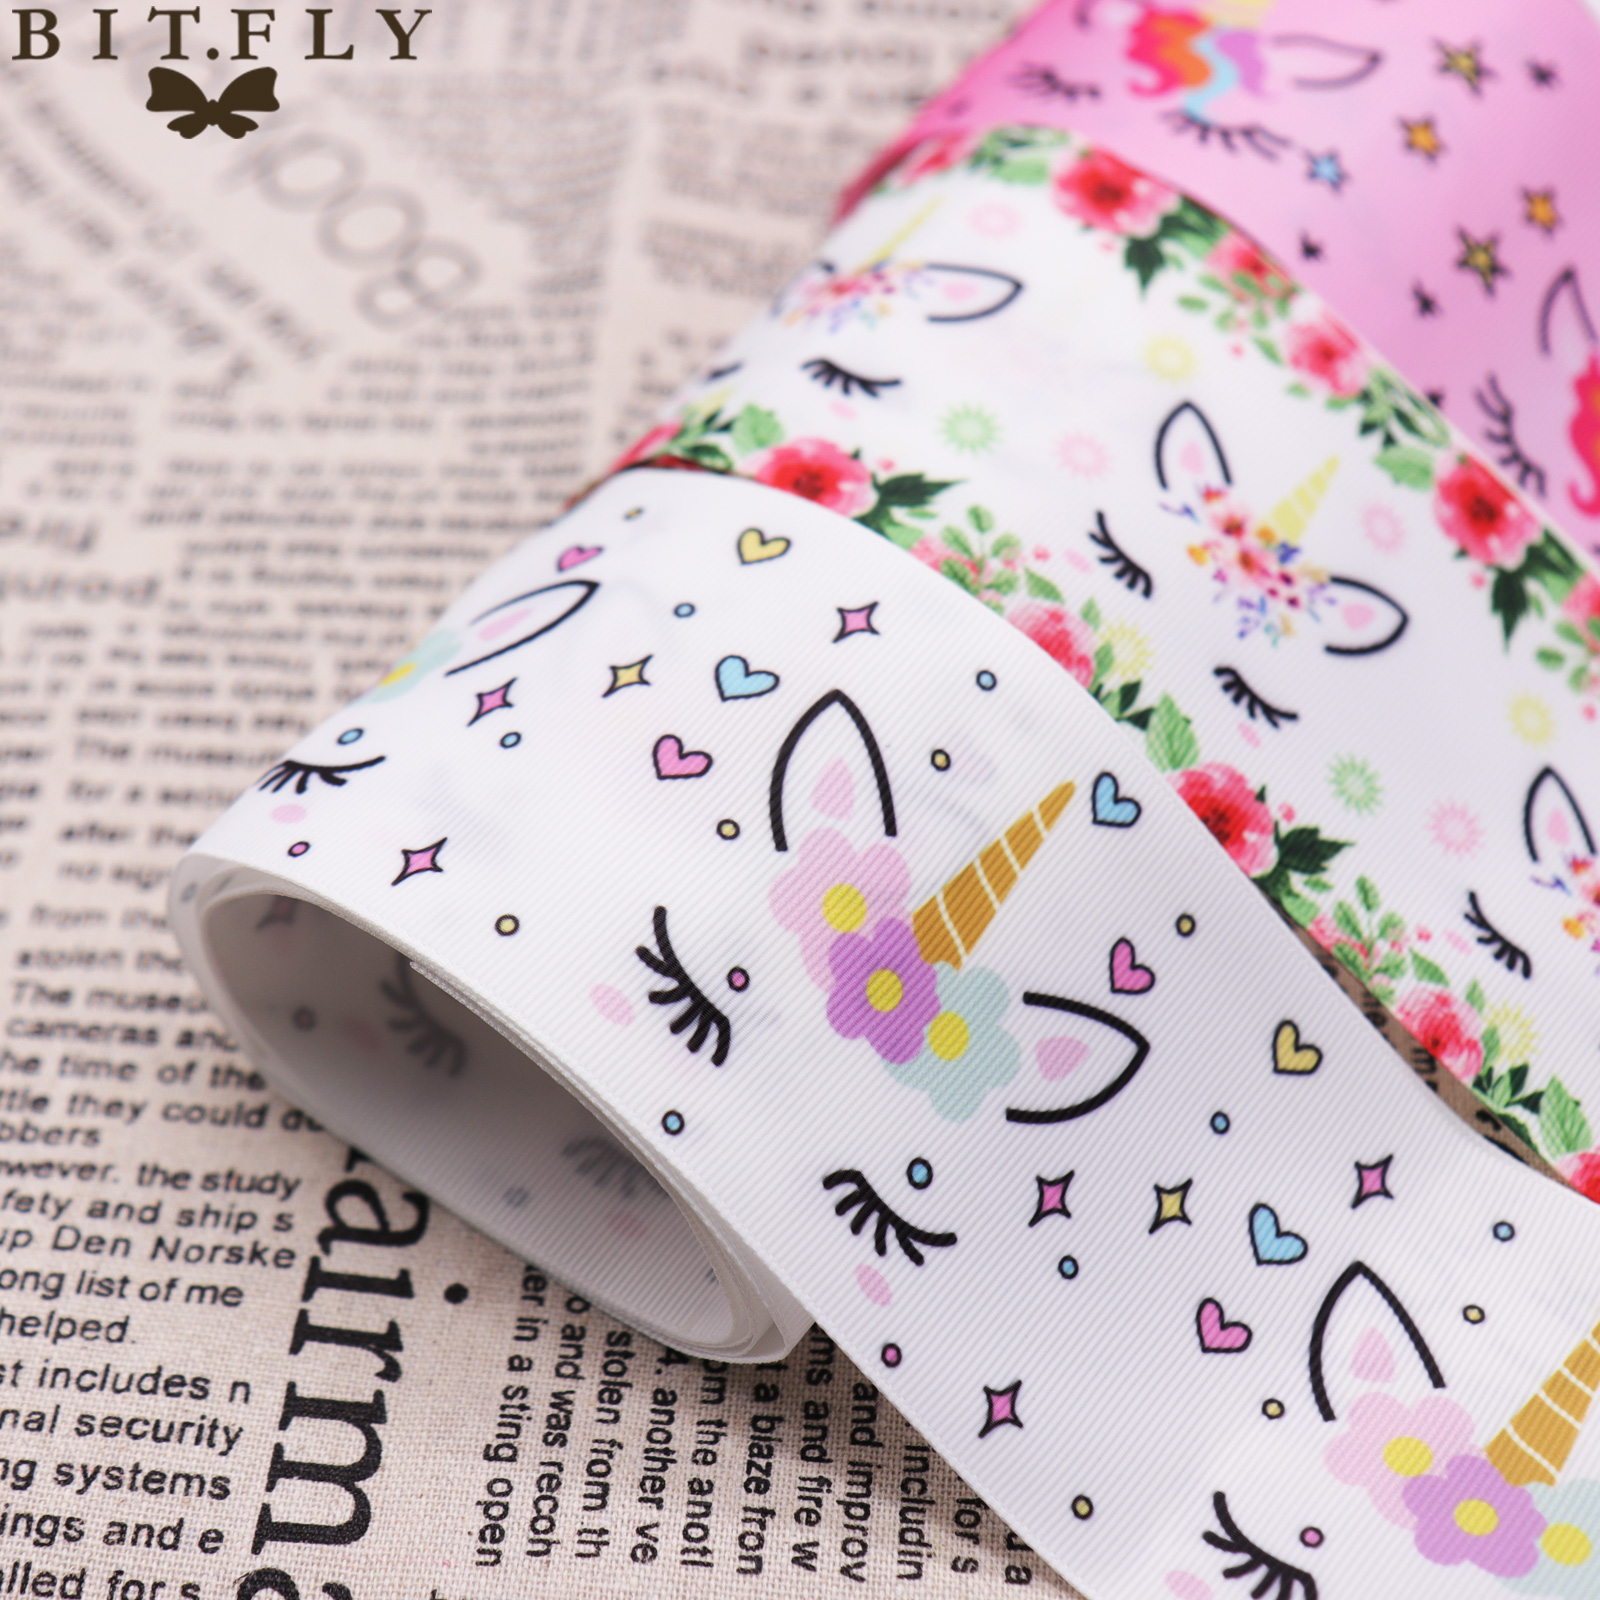 BIT.FLY 7.5cmx1Yard Cute Unicorn Printed Grosgrain Ribbon Wedding Unicorn Party Gift Wrapping Handmade  DIY Hair Accessories